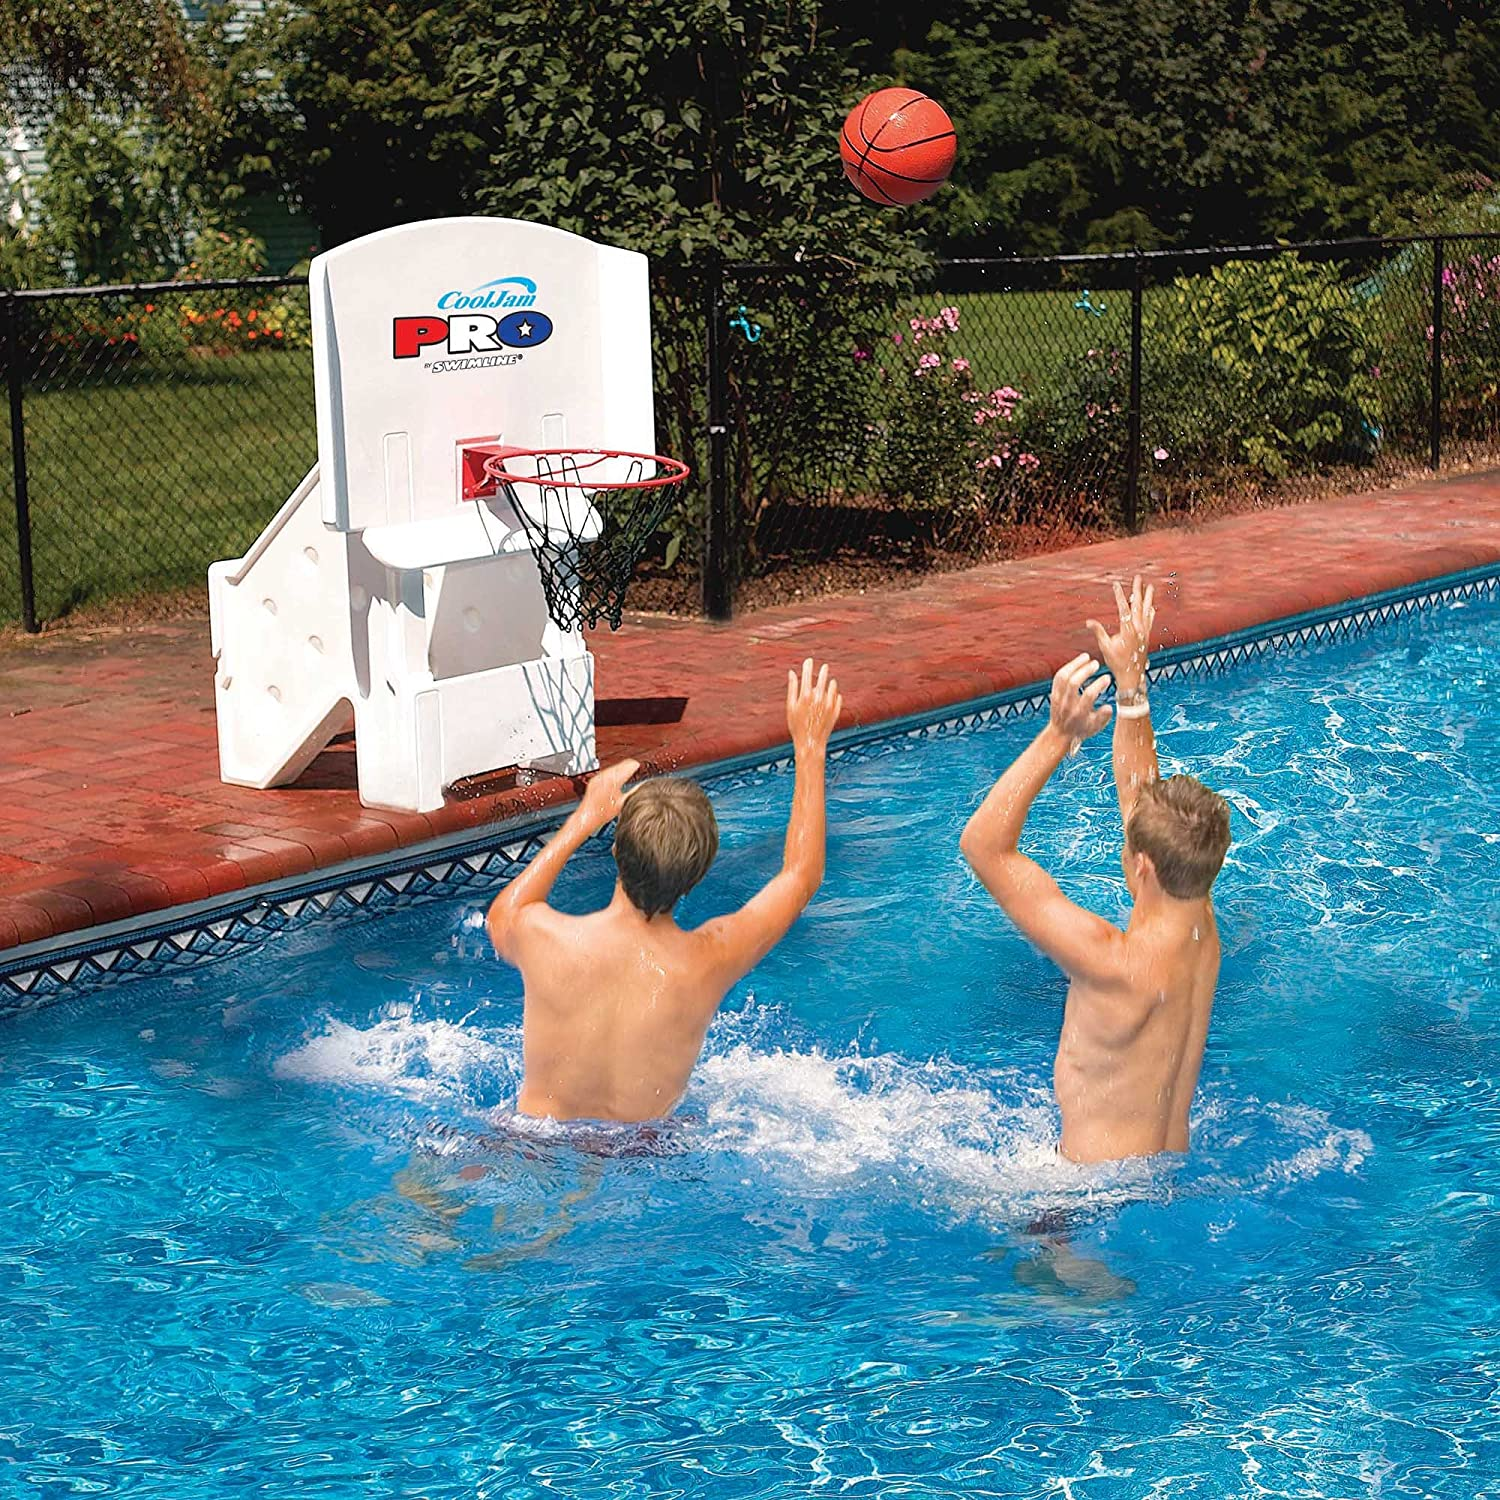 Swimline Cool Jam Pro Poolside Basketball Game Pool Toy 9195